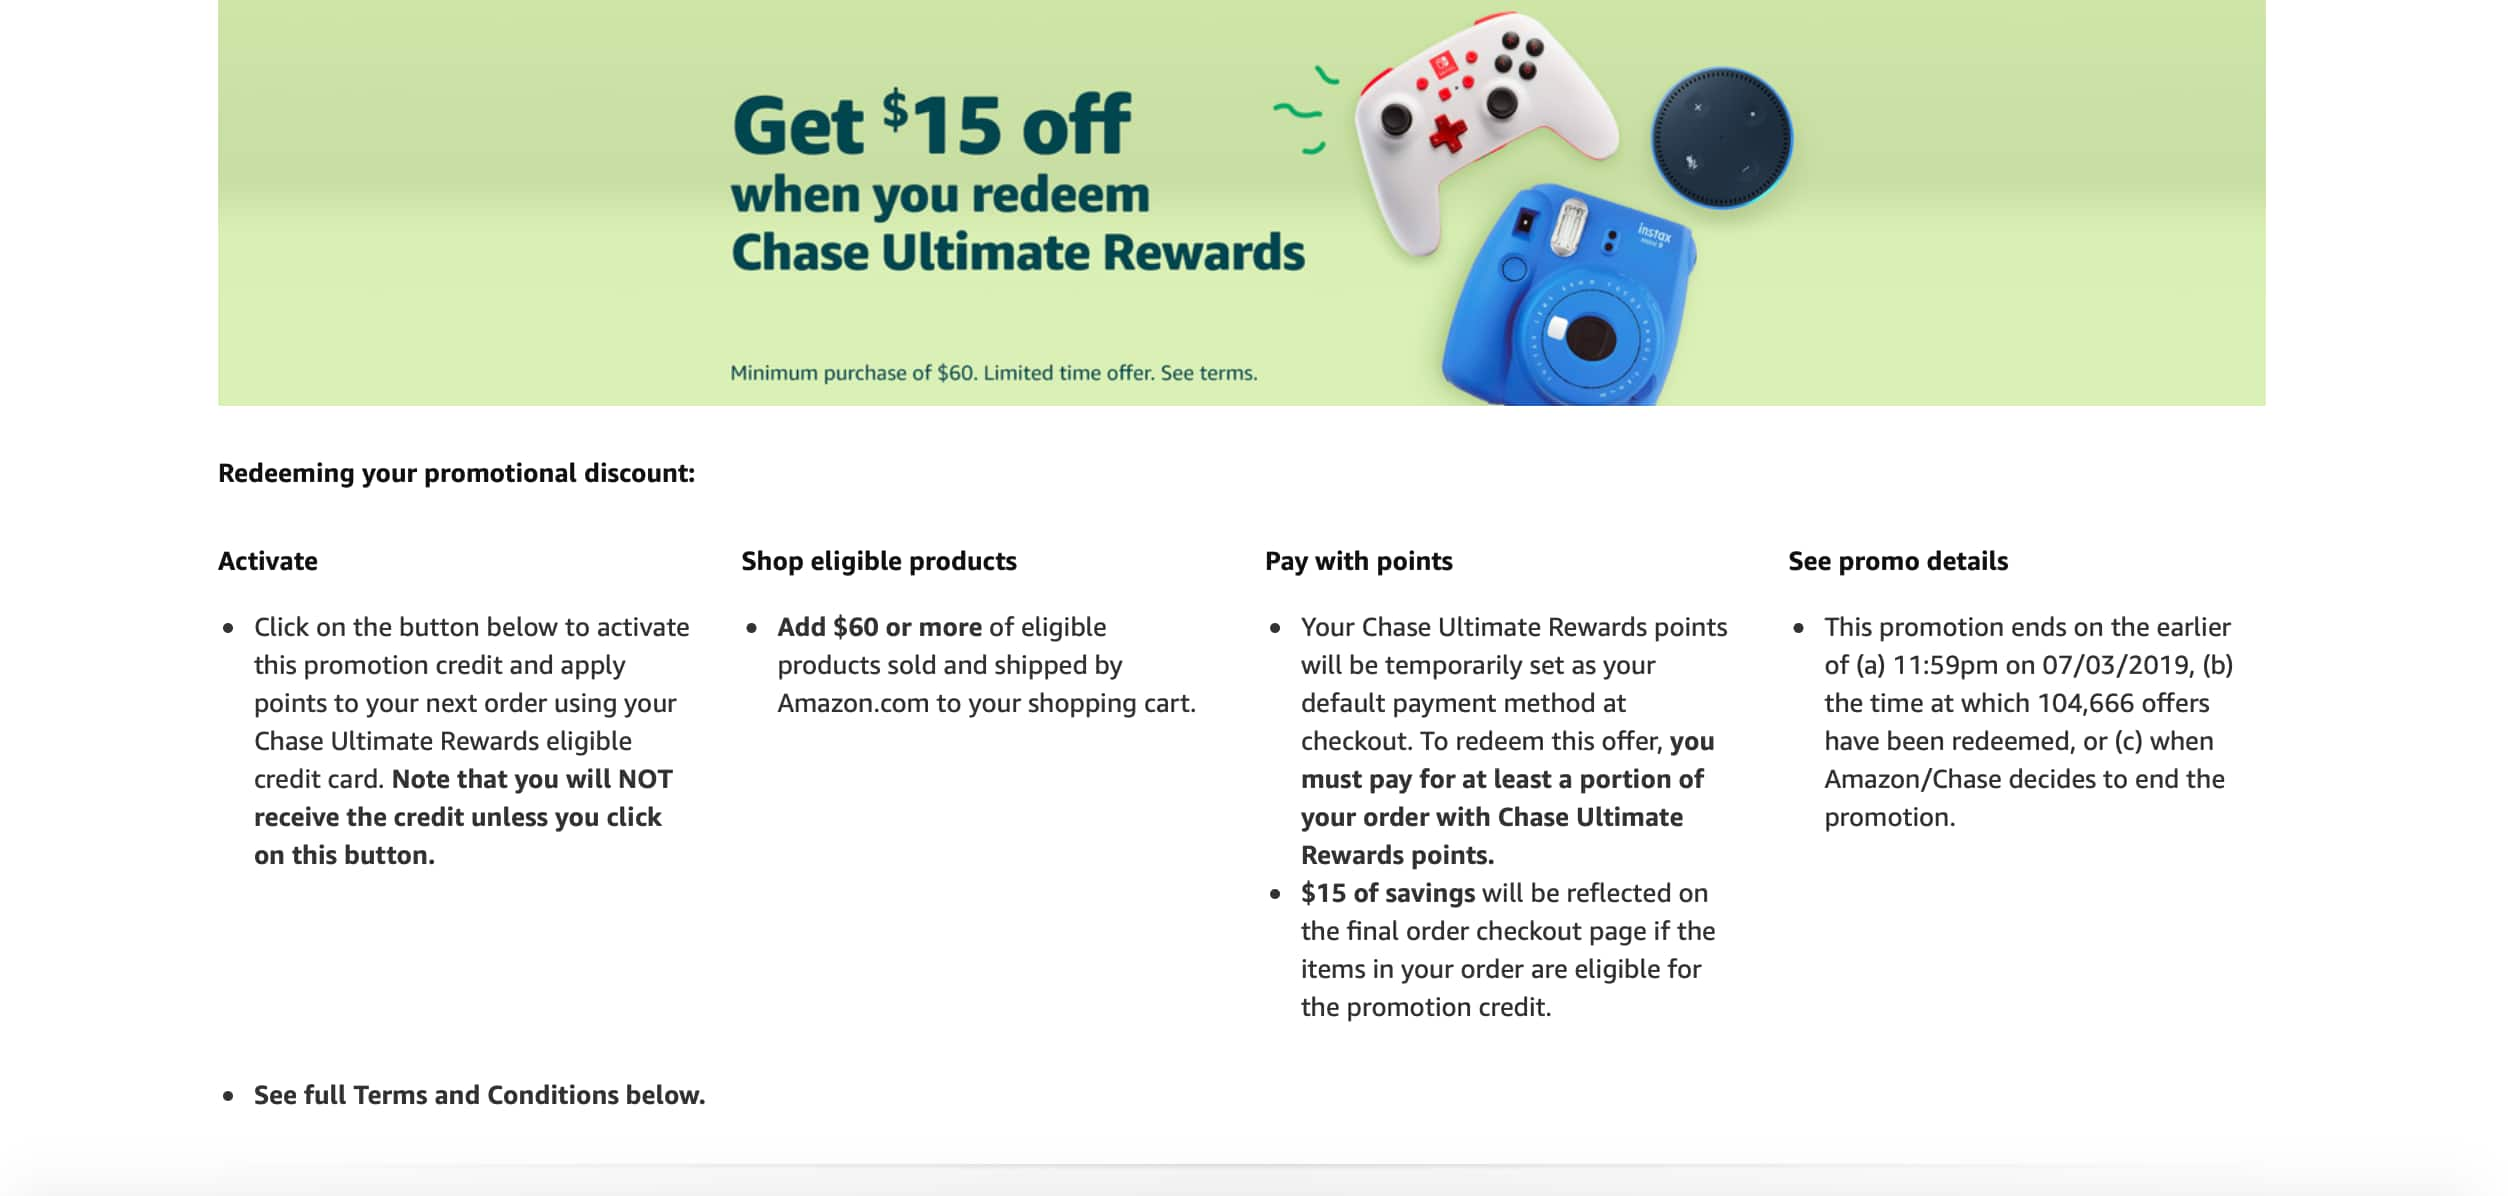 Gets $15 off when you reedeem Chase Ultimate Reward with a minimum purchase of $60 or more. (YYMV)